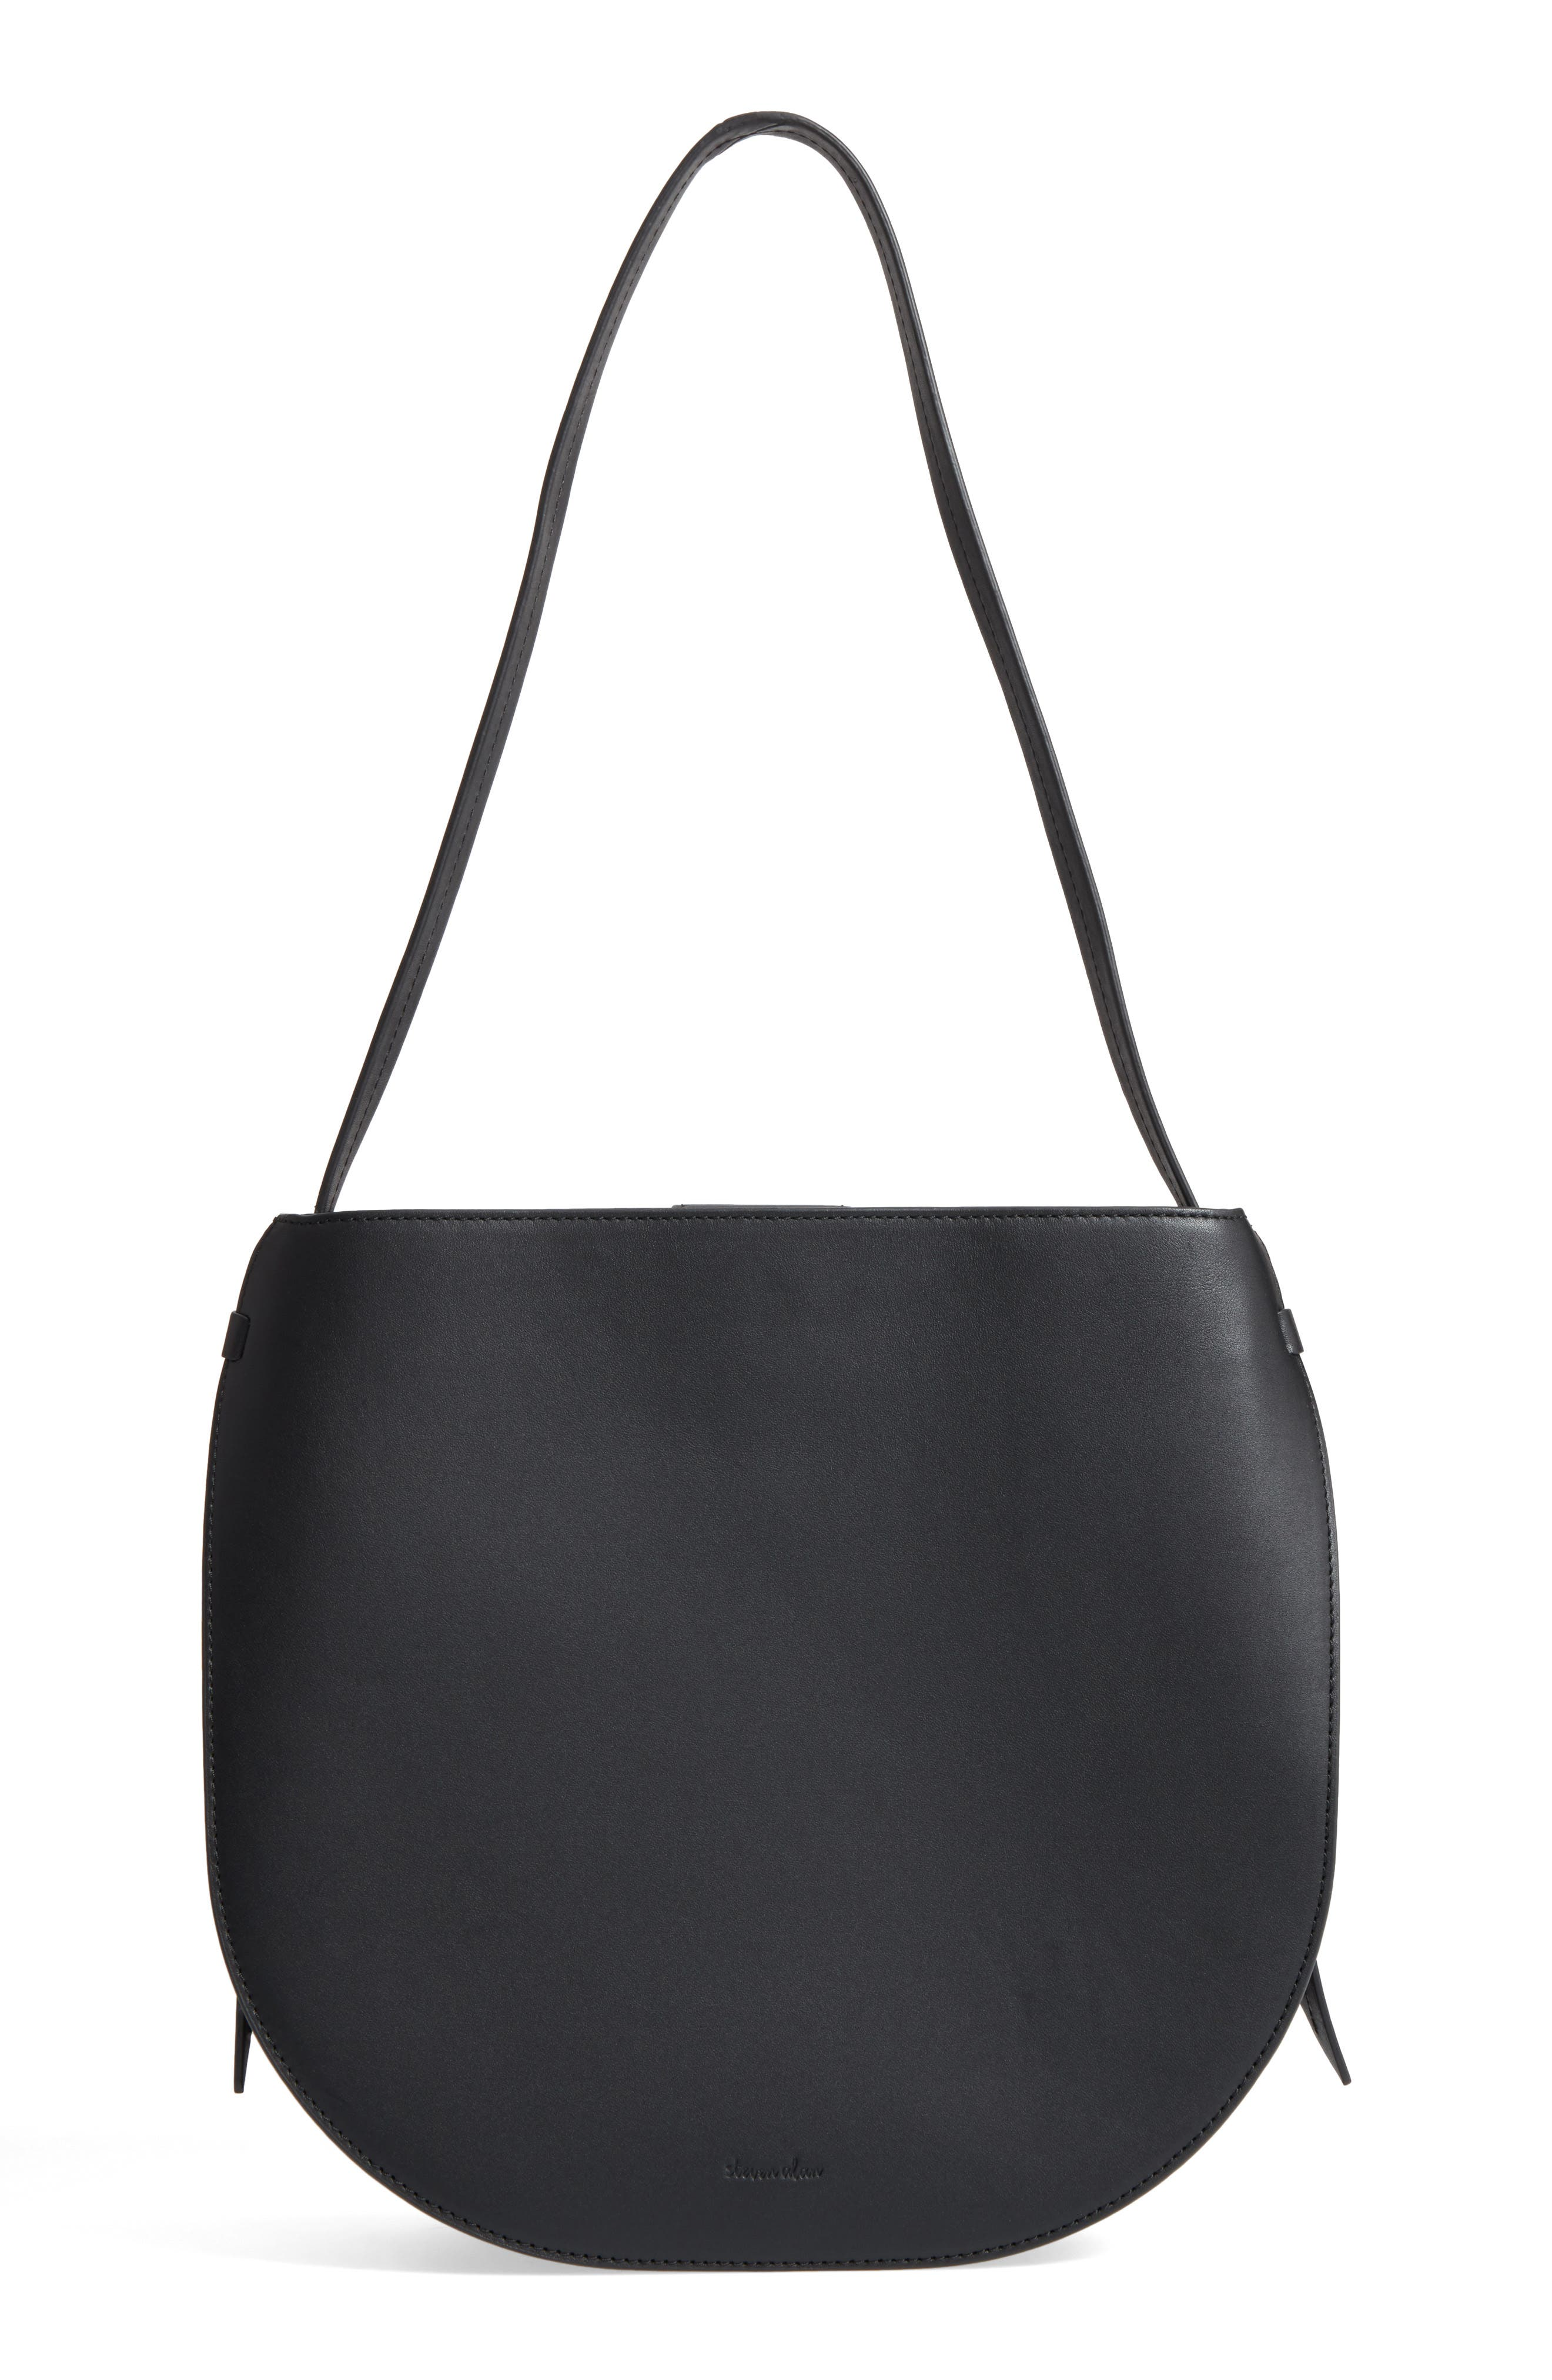 Helena Half Moon Leather Shoulder Bag,                             Main thumbnail 1, color,                             Black